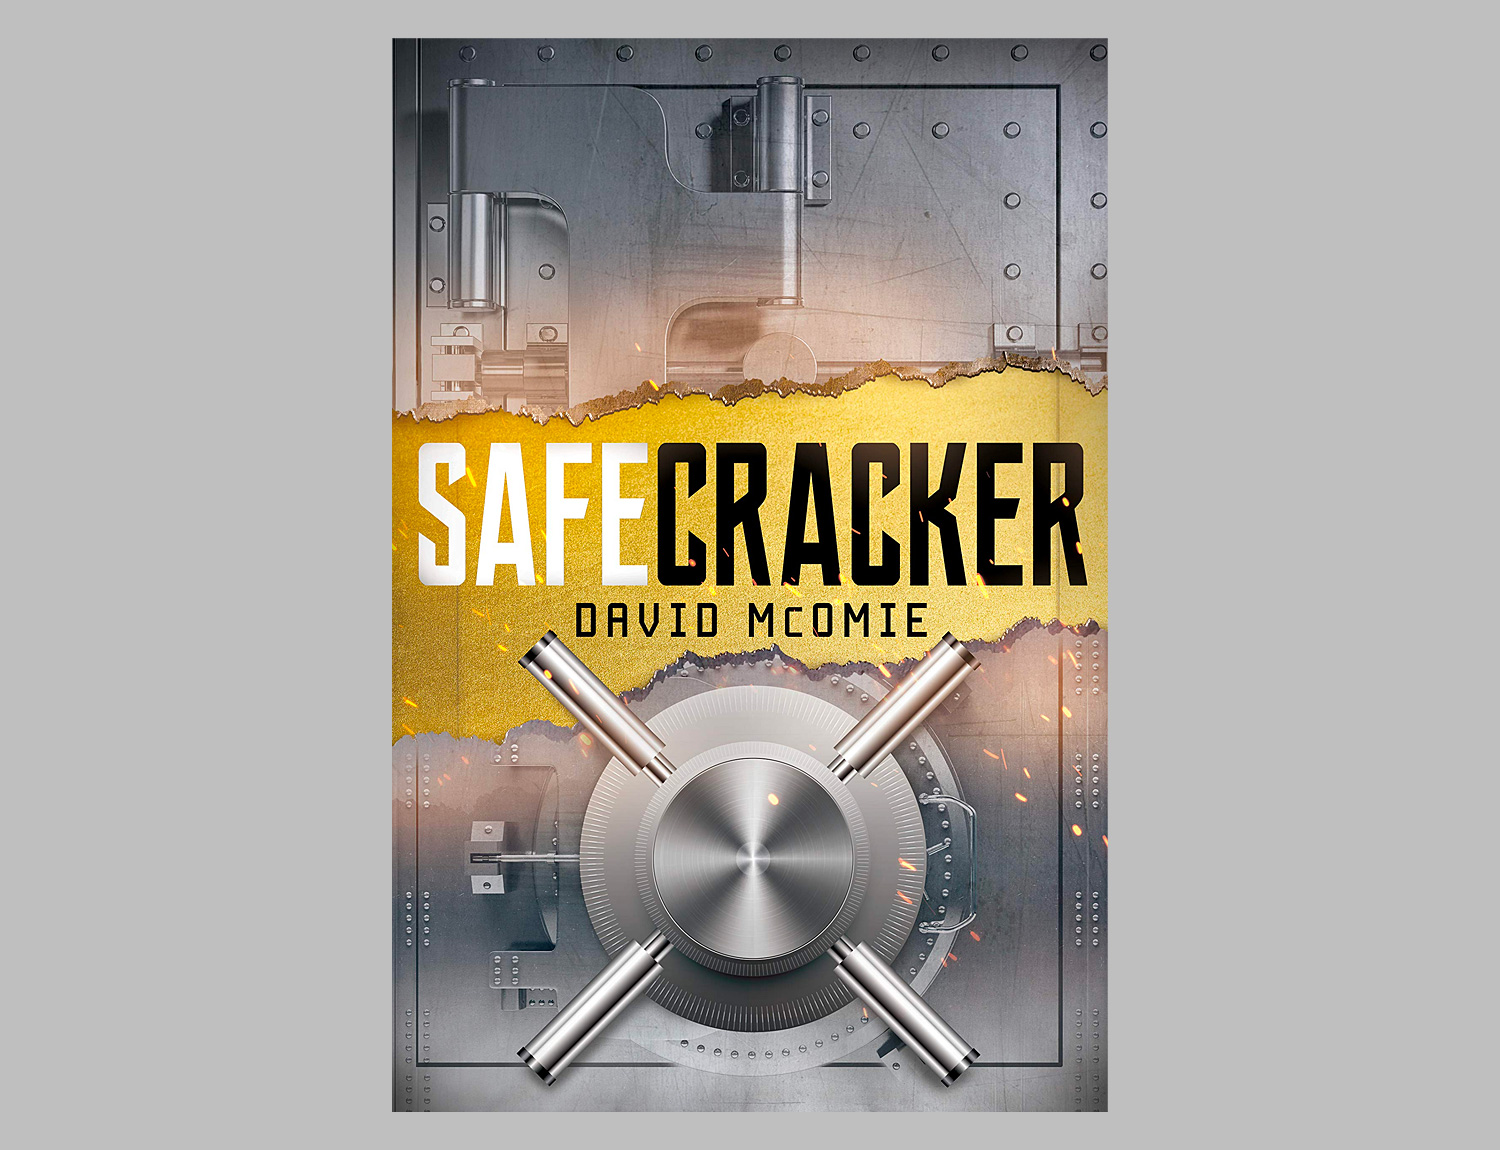 Safecracker: A Chronicle of the Coolest Job in the World at werd.com